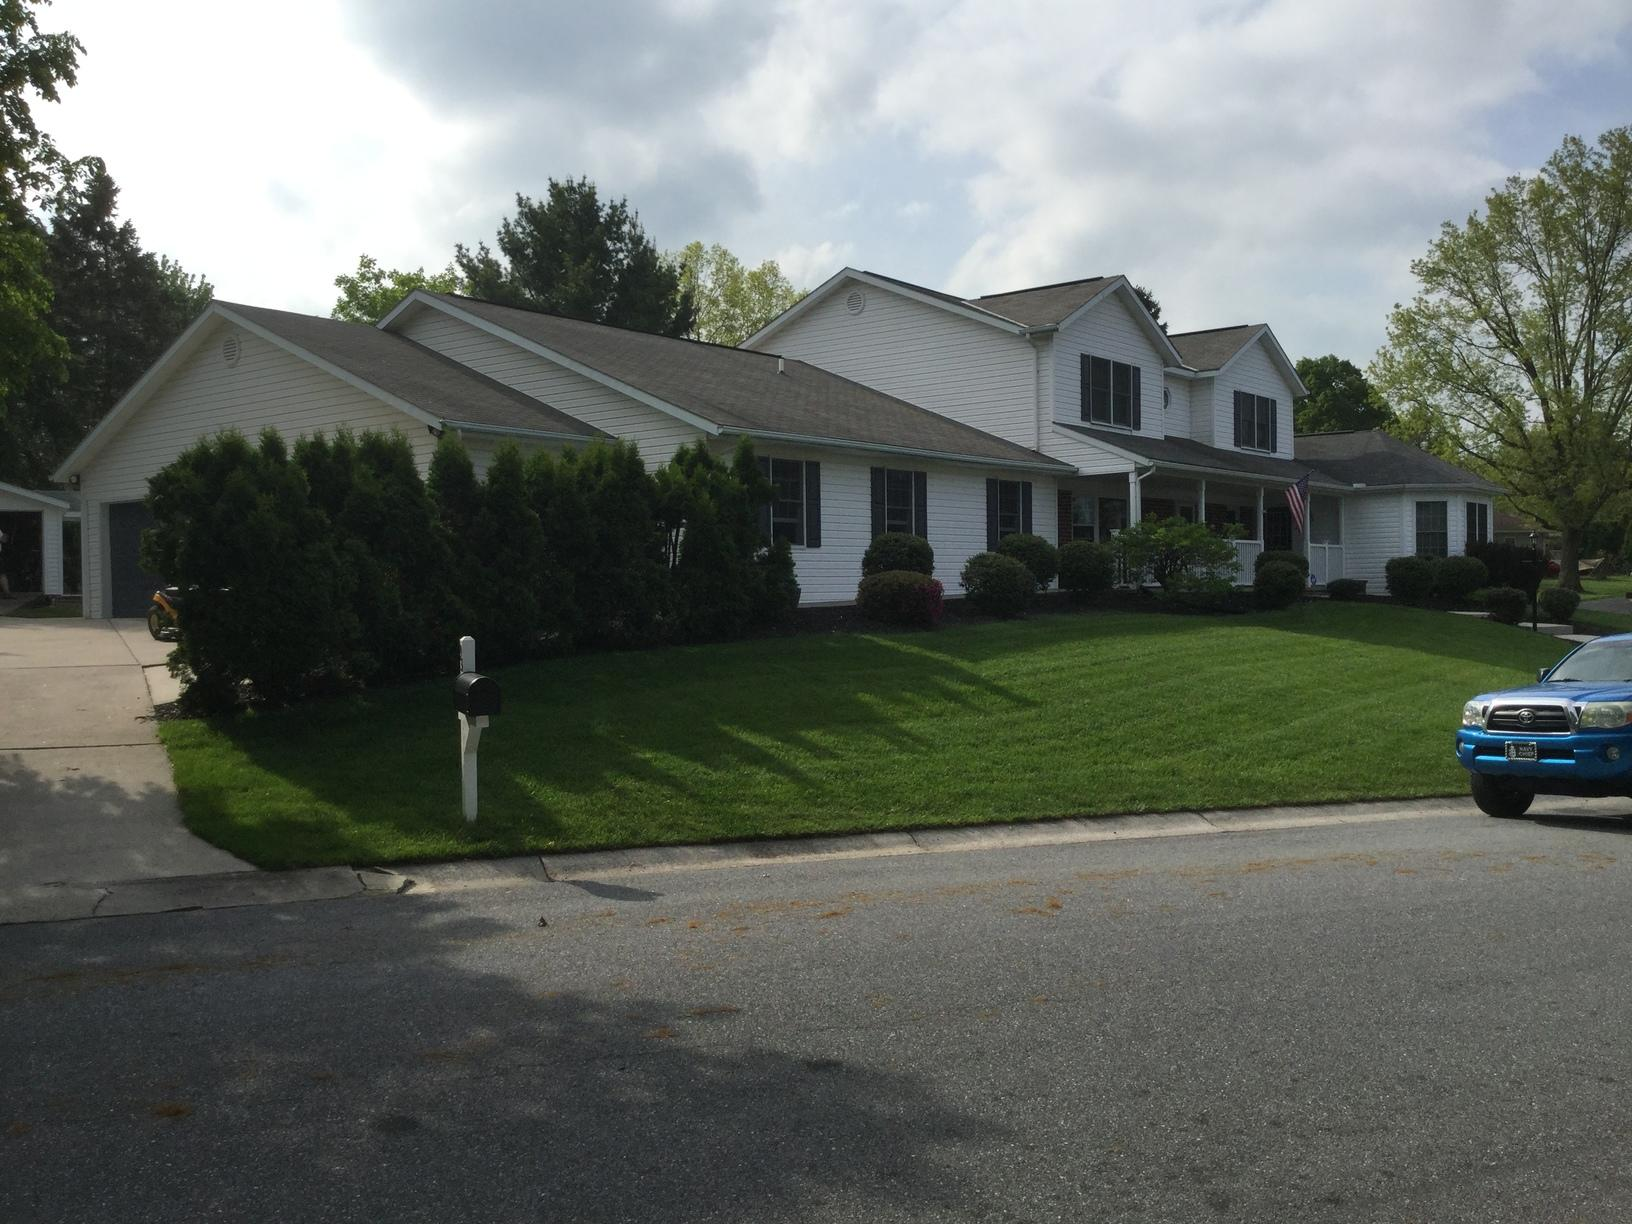 Roof replacement in,  Hershey Pa - Before Photo